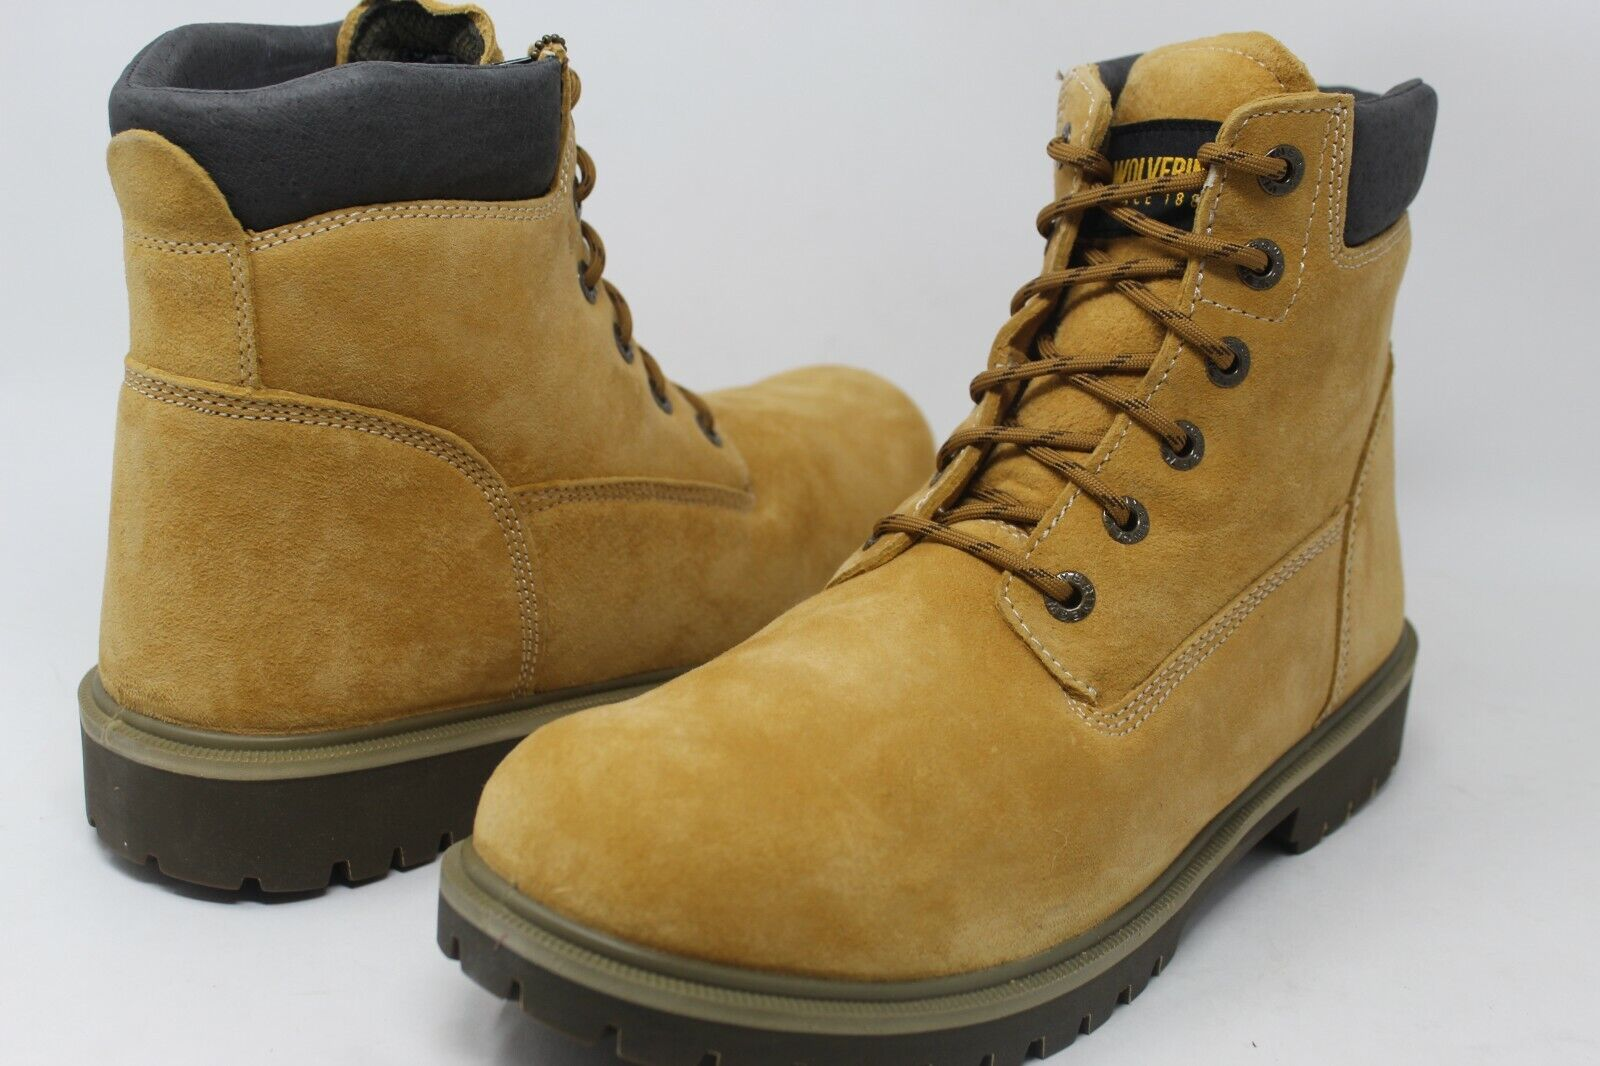 """Wolverine Men's Insulated 6"""" #84954 Gold Leather Waterproof Boot Size 12"""